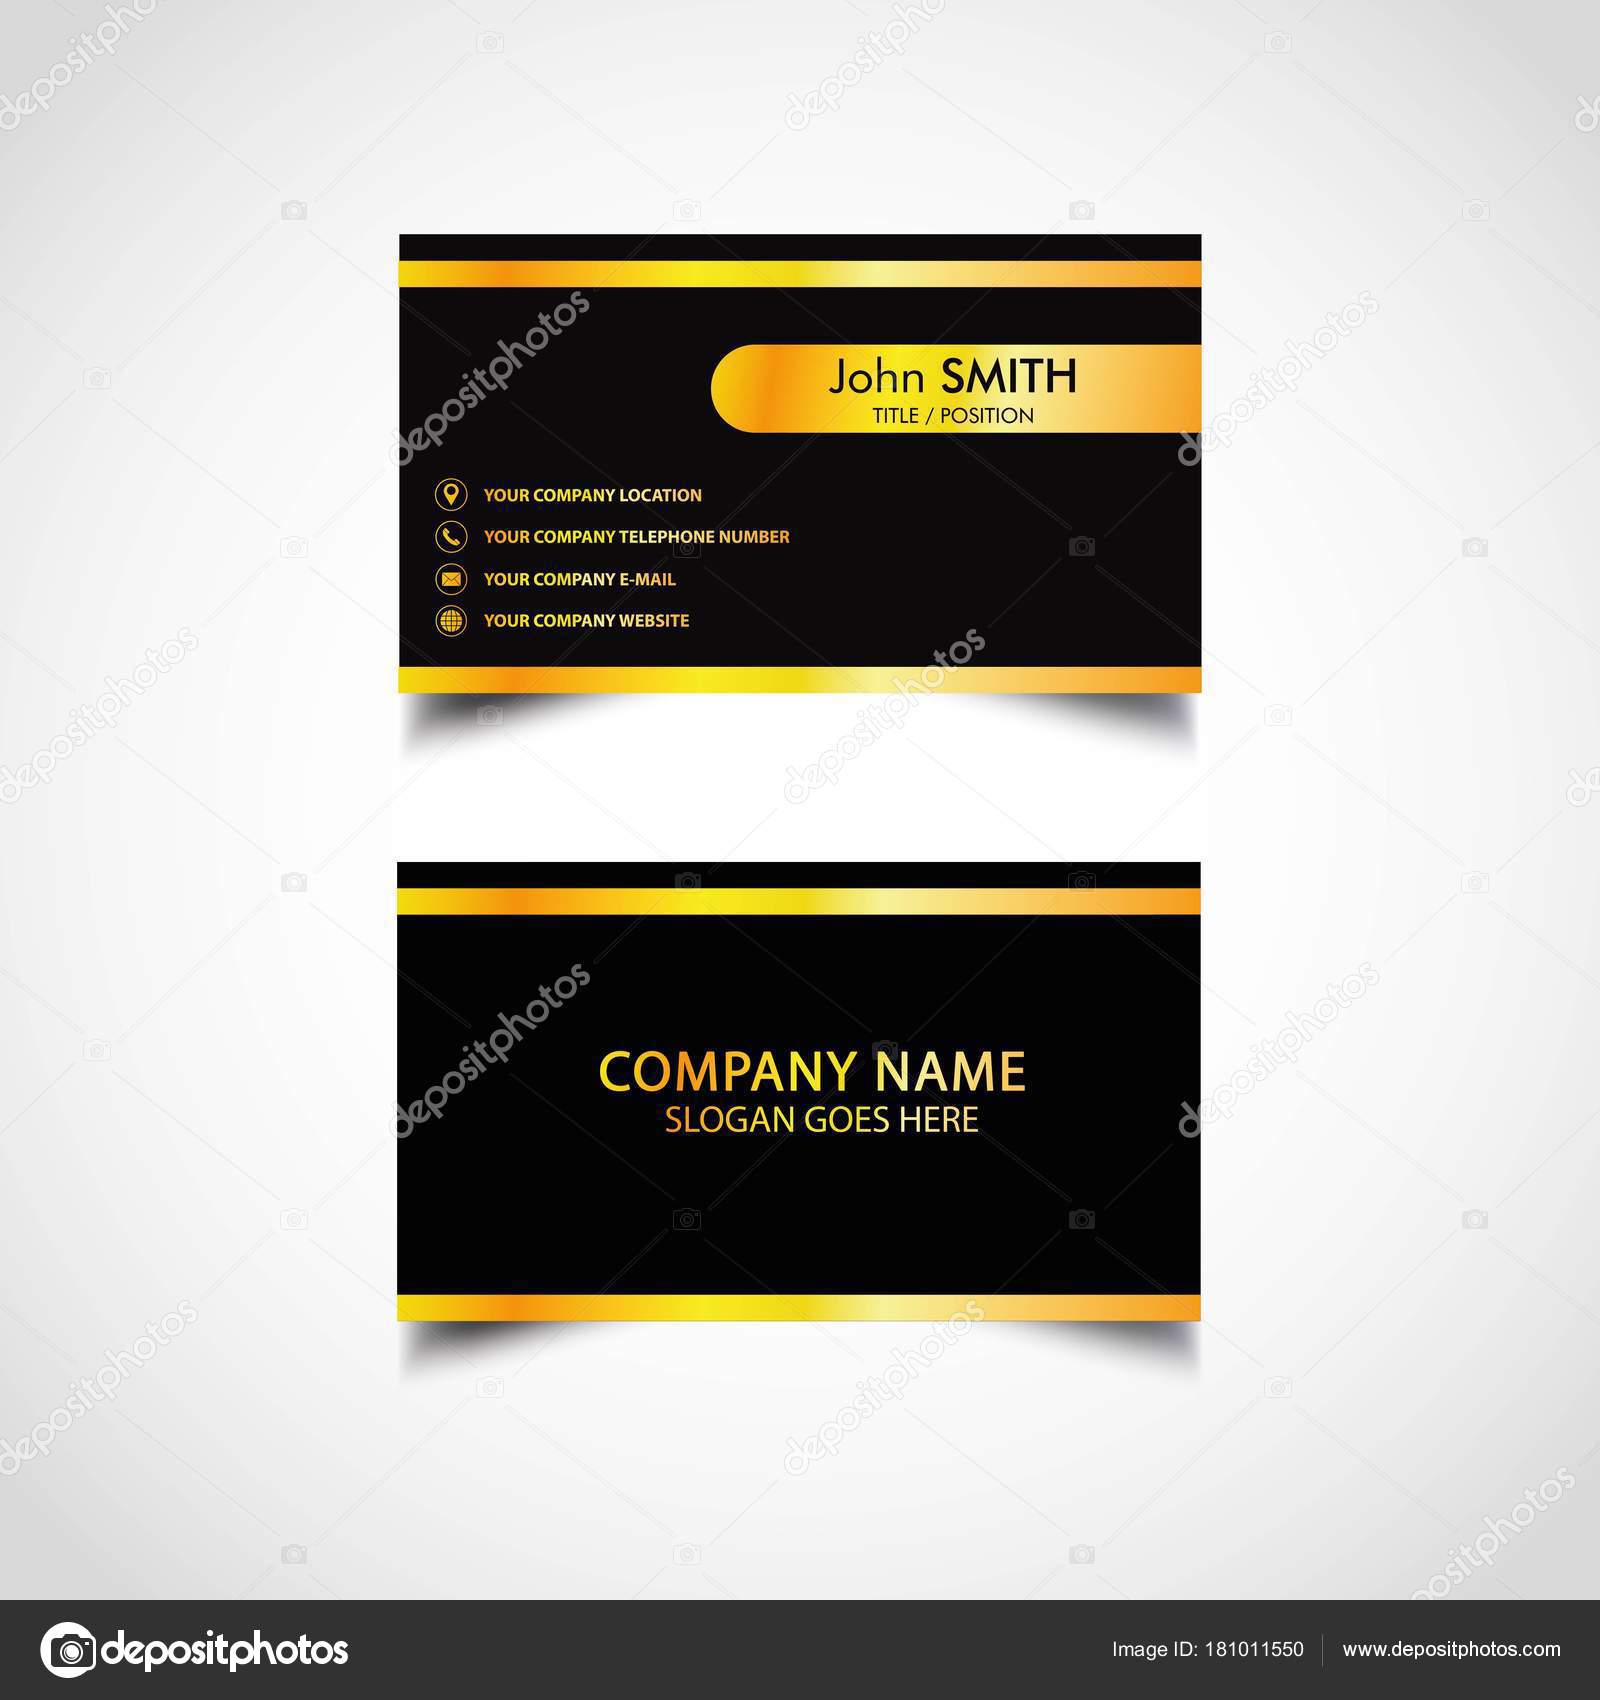 Golden business card template vector illustration eps file stock golden business card template vector illustration eps file stock vector flashek Images